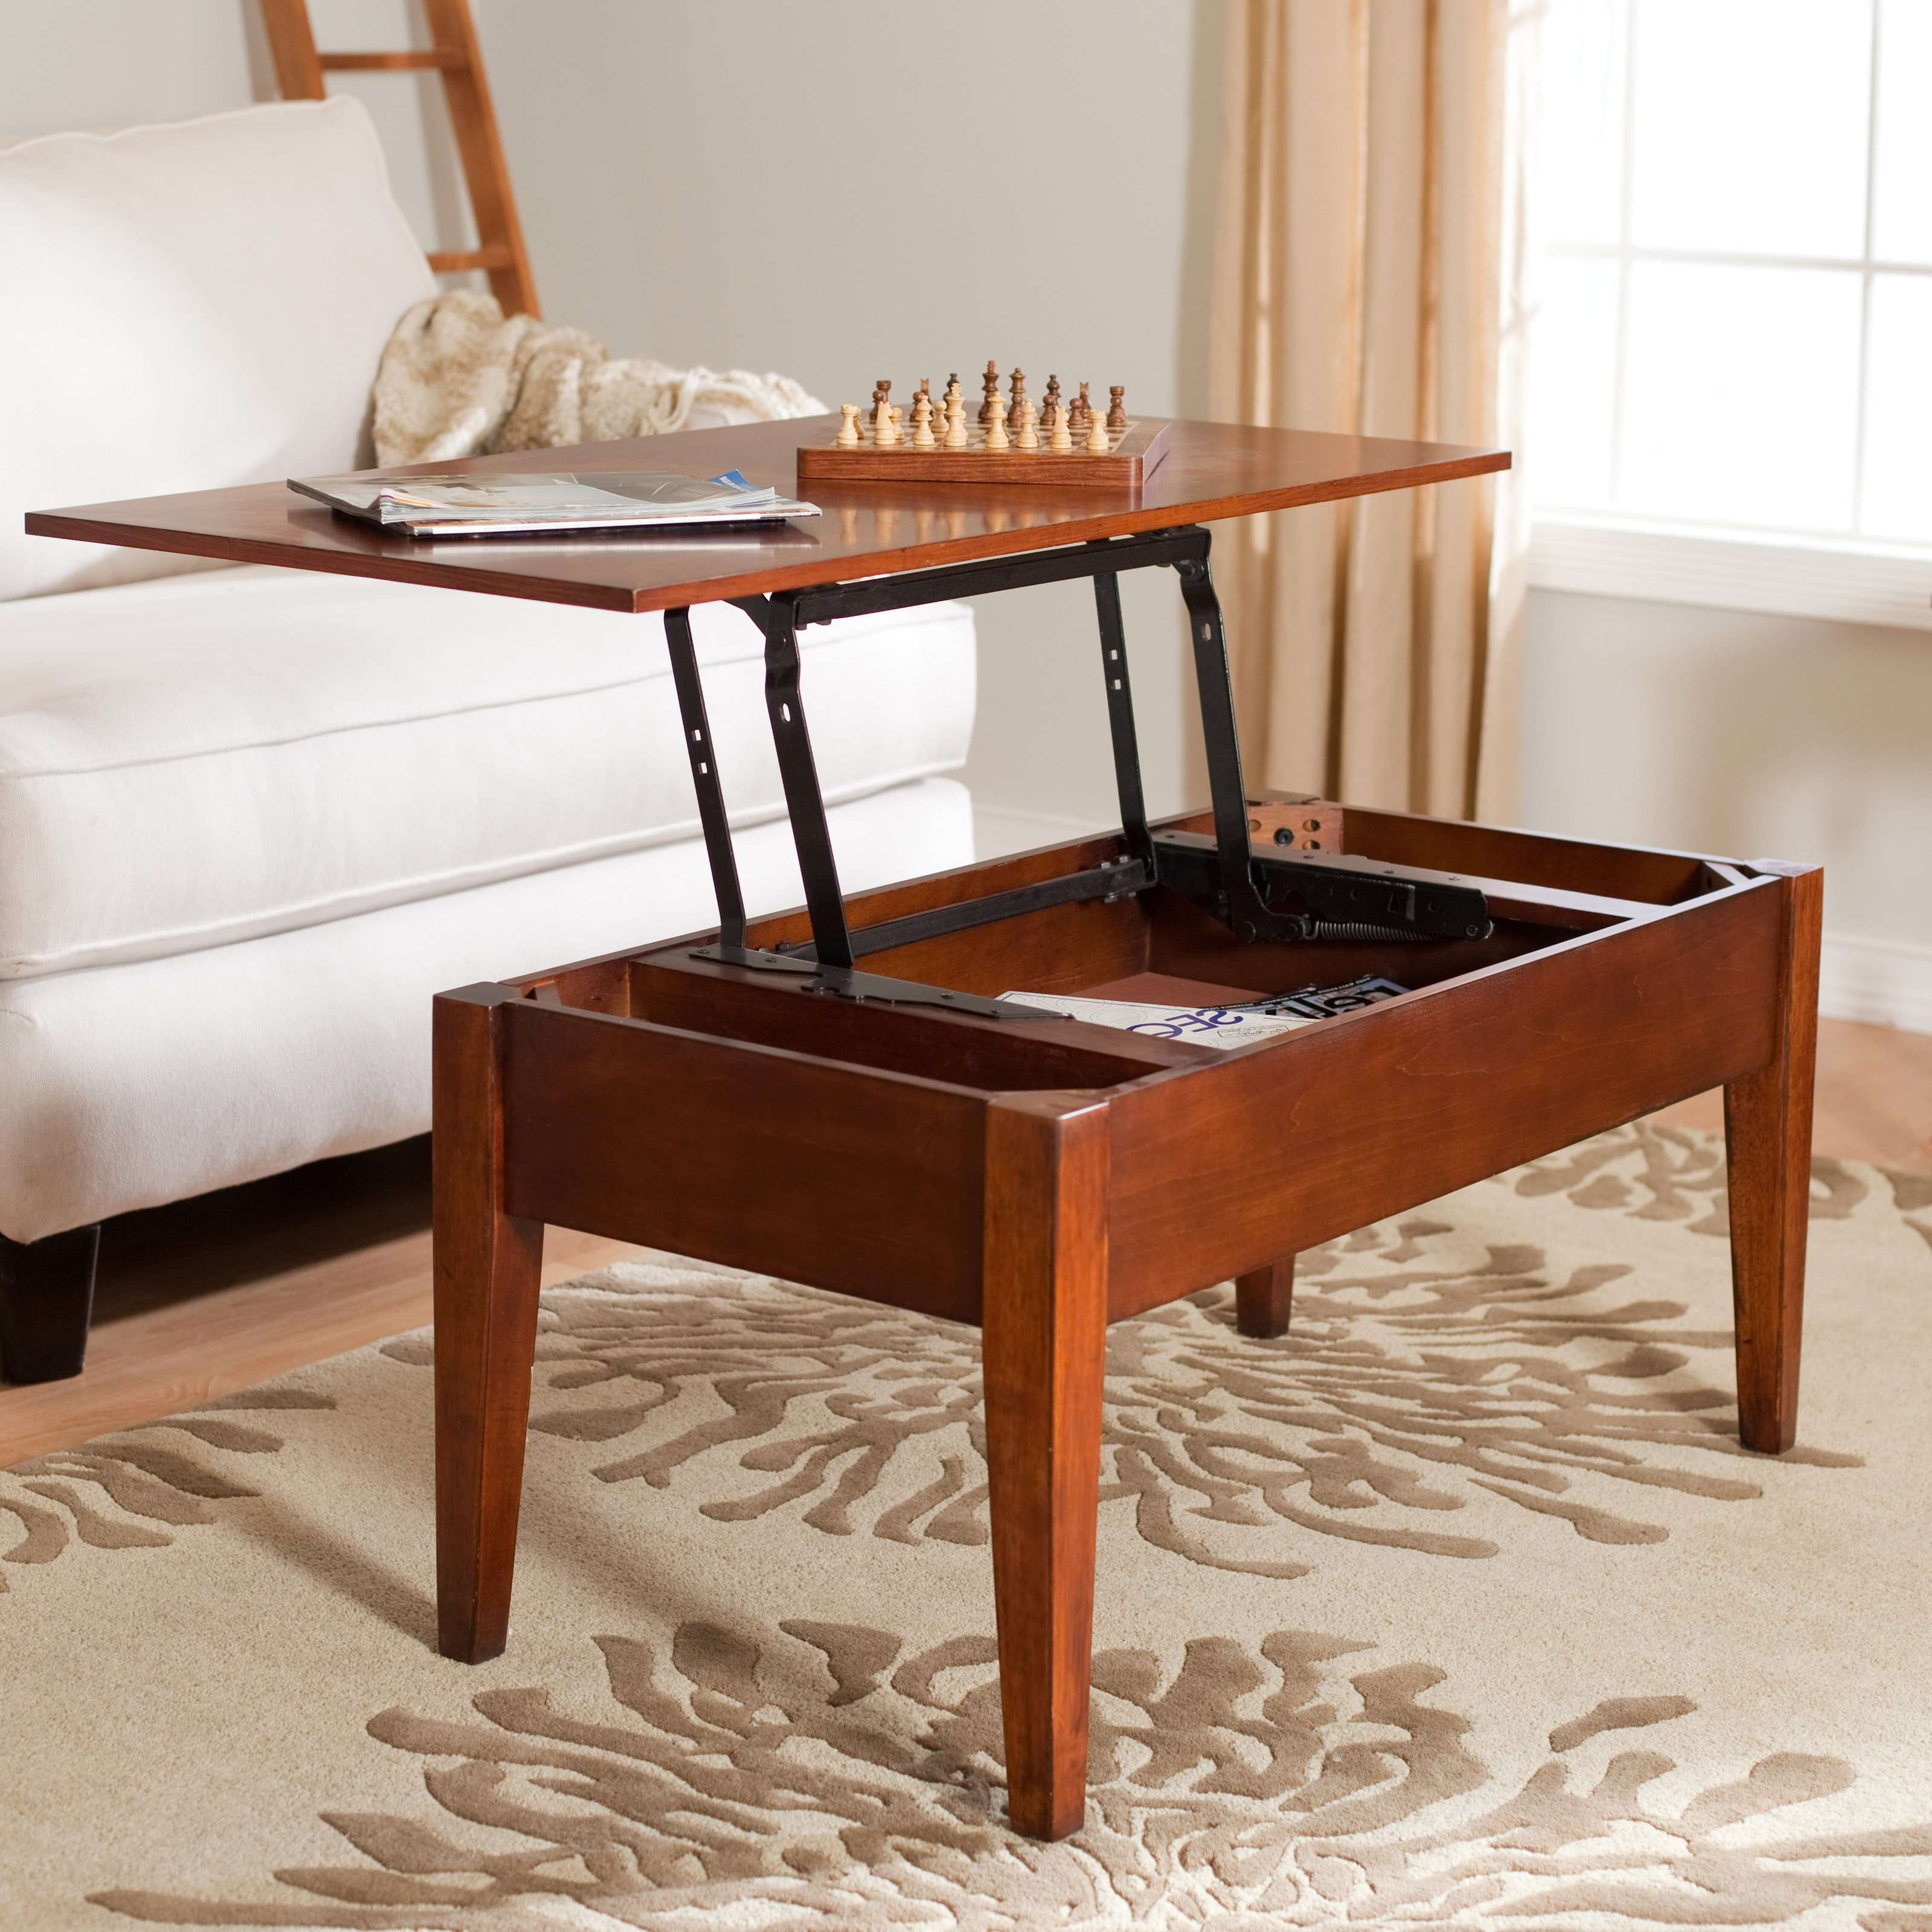 Coffee Tables : Extendable Coffee Table Design Great Home Intended For 2017 Extendable Coffee Tables (View 5 of 20)